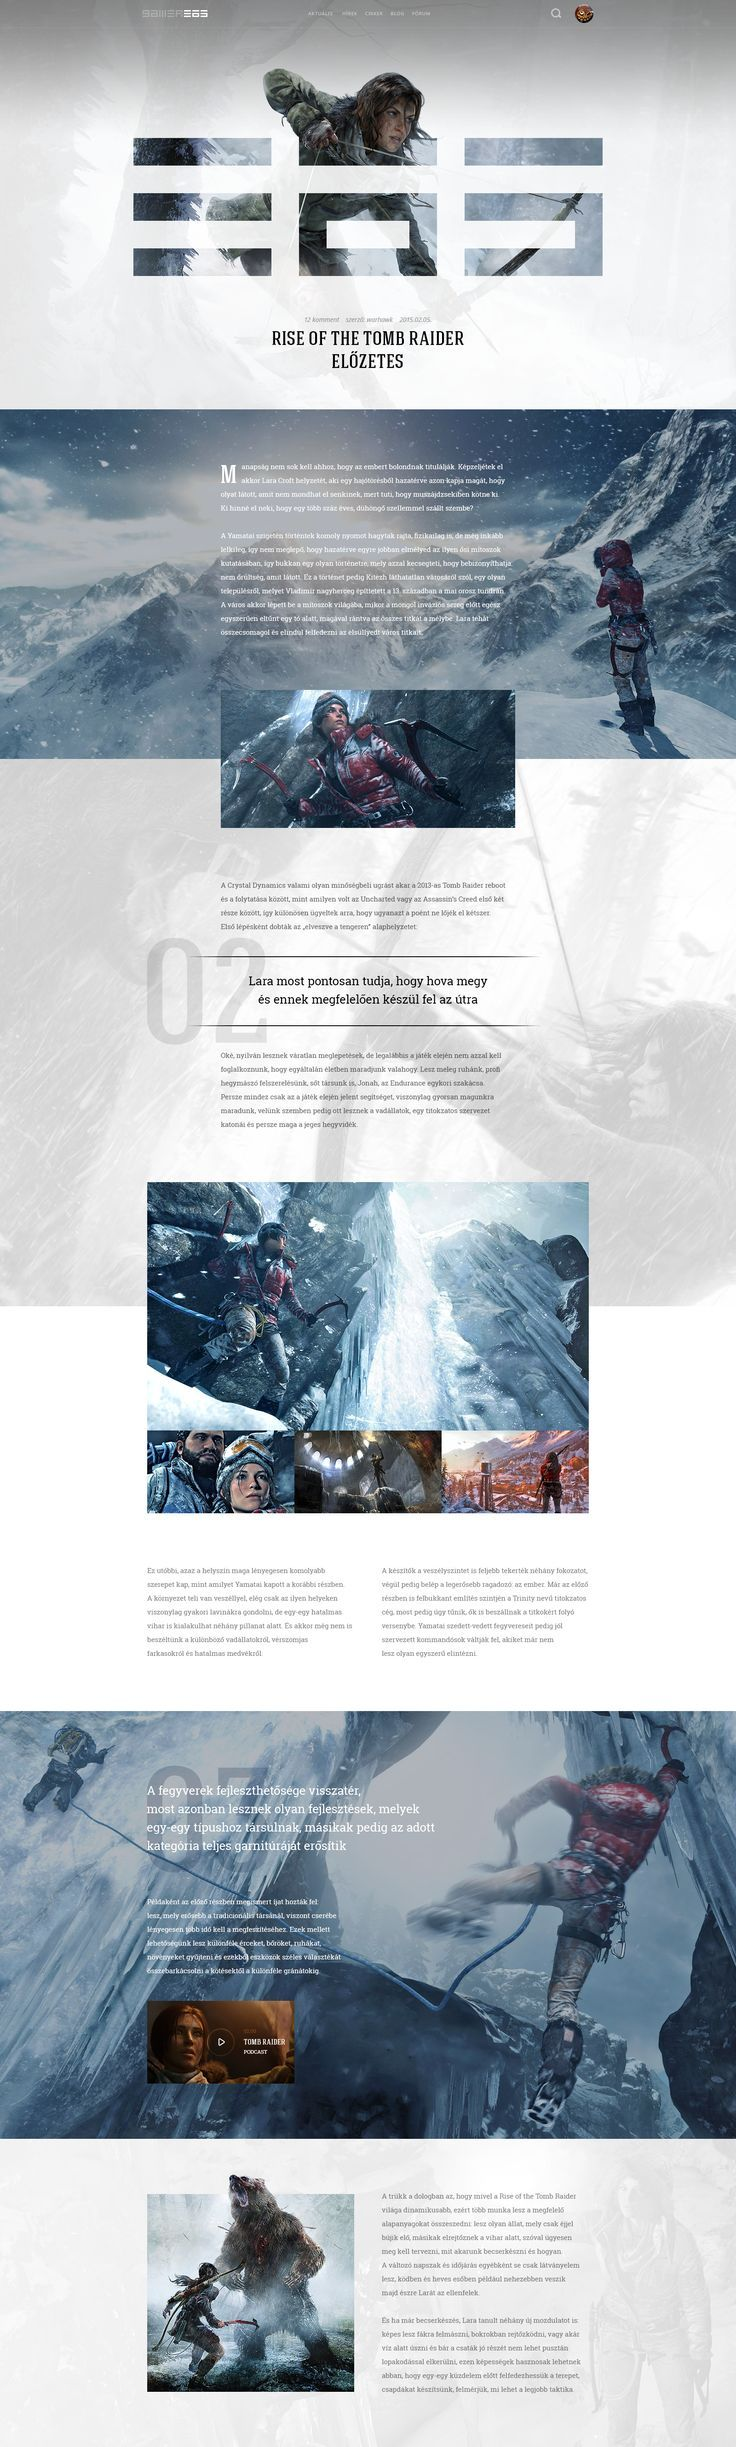 Dribbble - 365-rise-layout-rise-of-the-tomb-raider-hellowiktor.png by Viktor Vörös